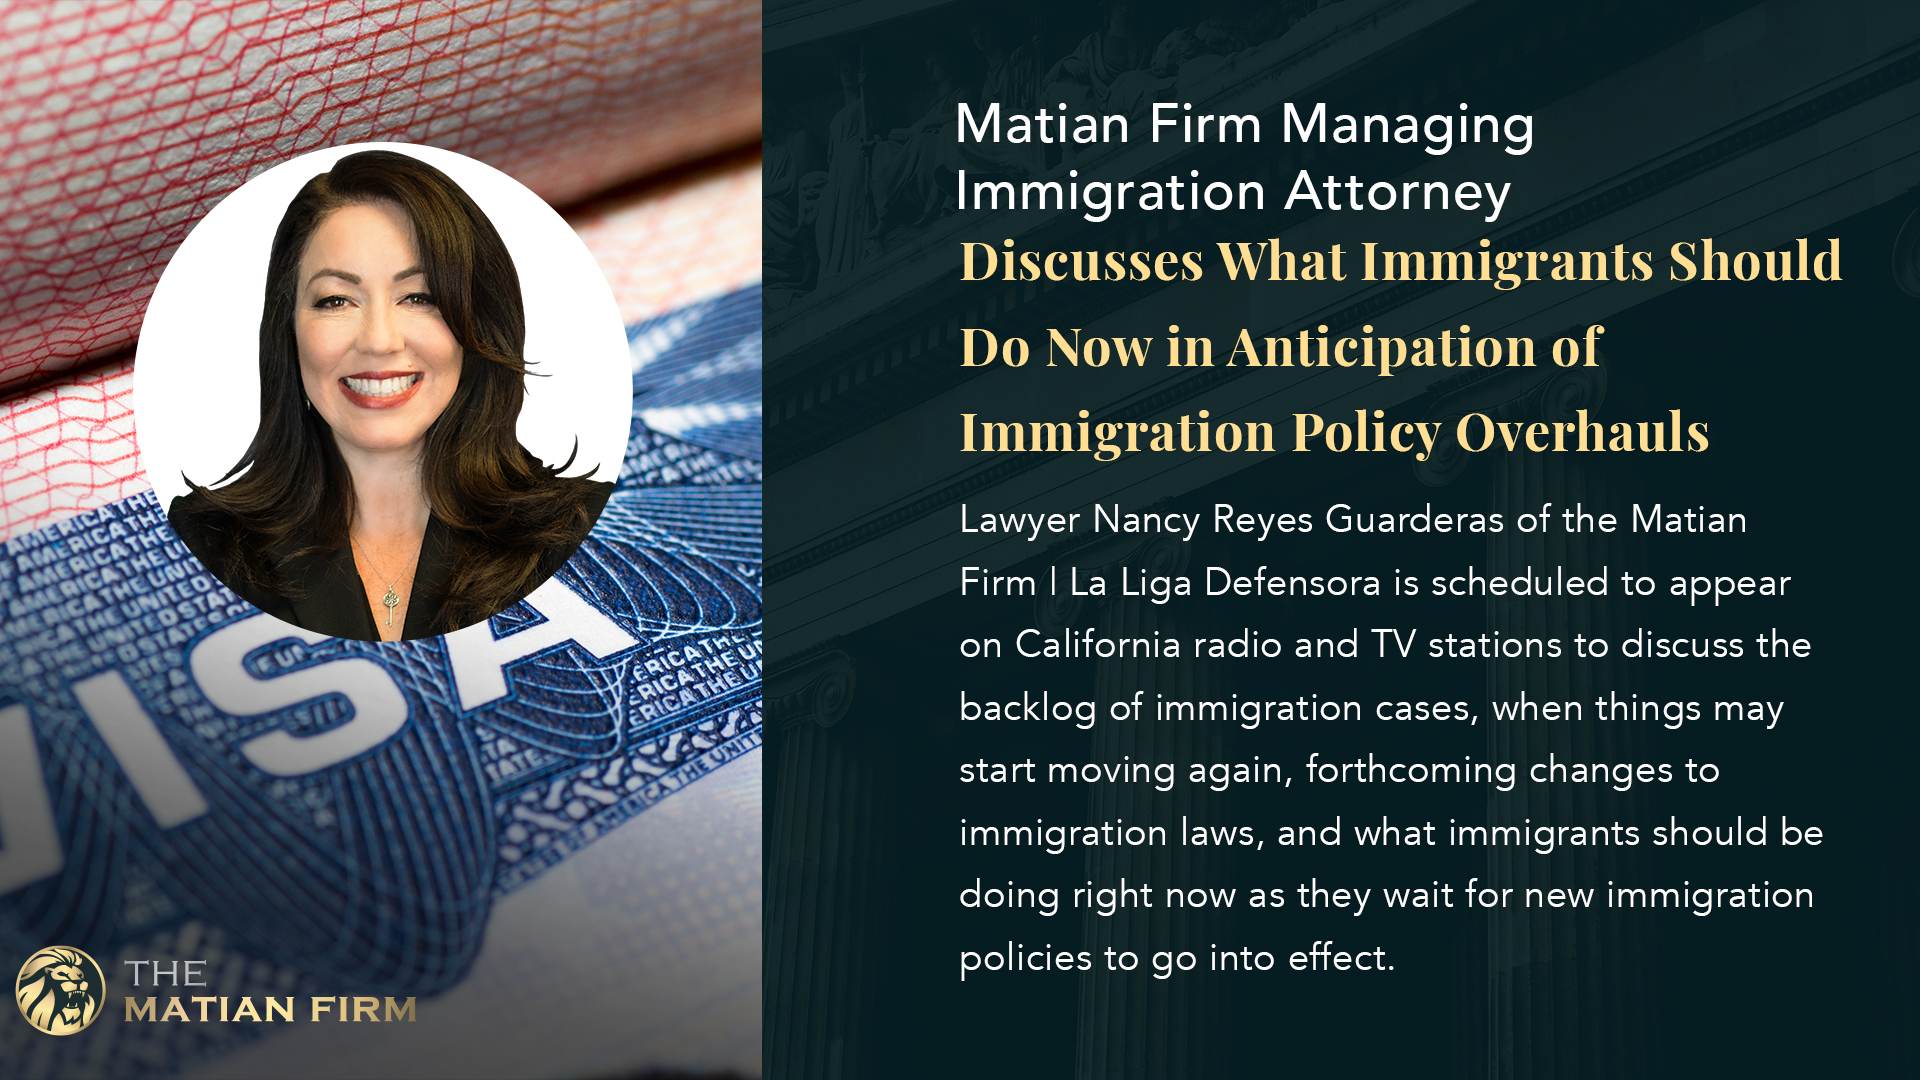 Matian Firm | La Liga Defensora Managing Immigration Attorney Nancy Reyes Guarderas Discusses What Steps to Take Now in Anticipation of Immigration Policy Overhauls